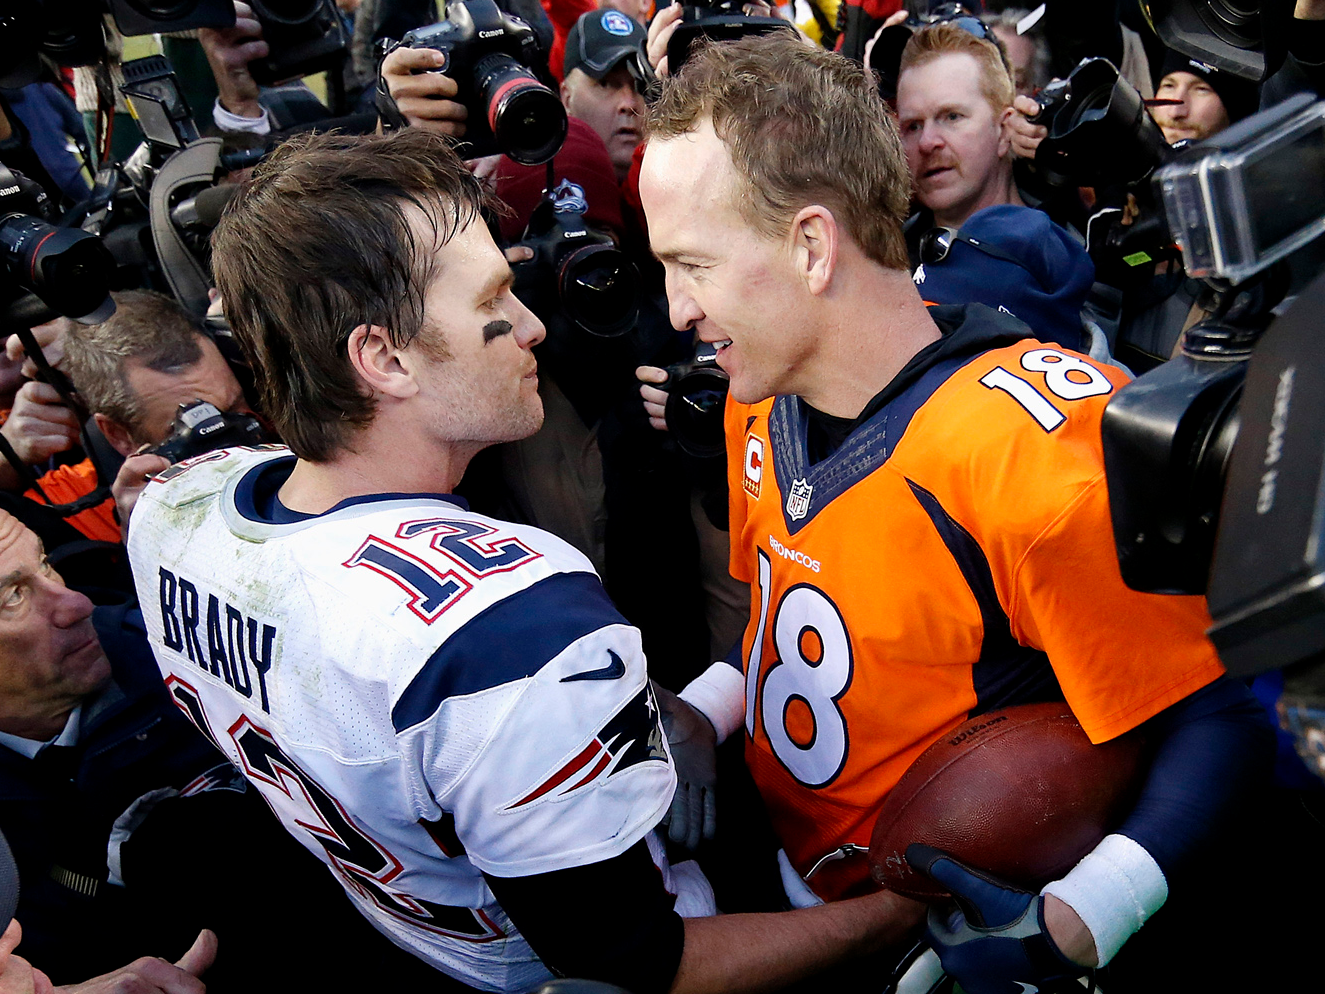 peyton manning vs tom brady essay The tom brady vs peyton manning debate has dominated the interwebs now for at least a decade the debate will continue for decades to come after the careers of these two all-time greats are over.